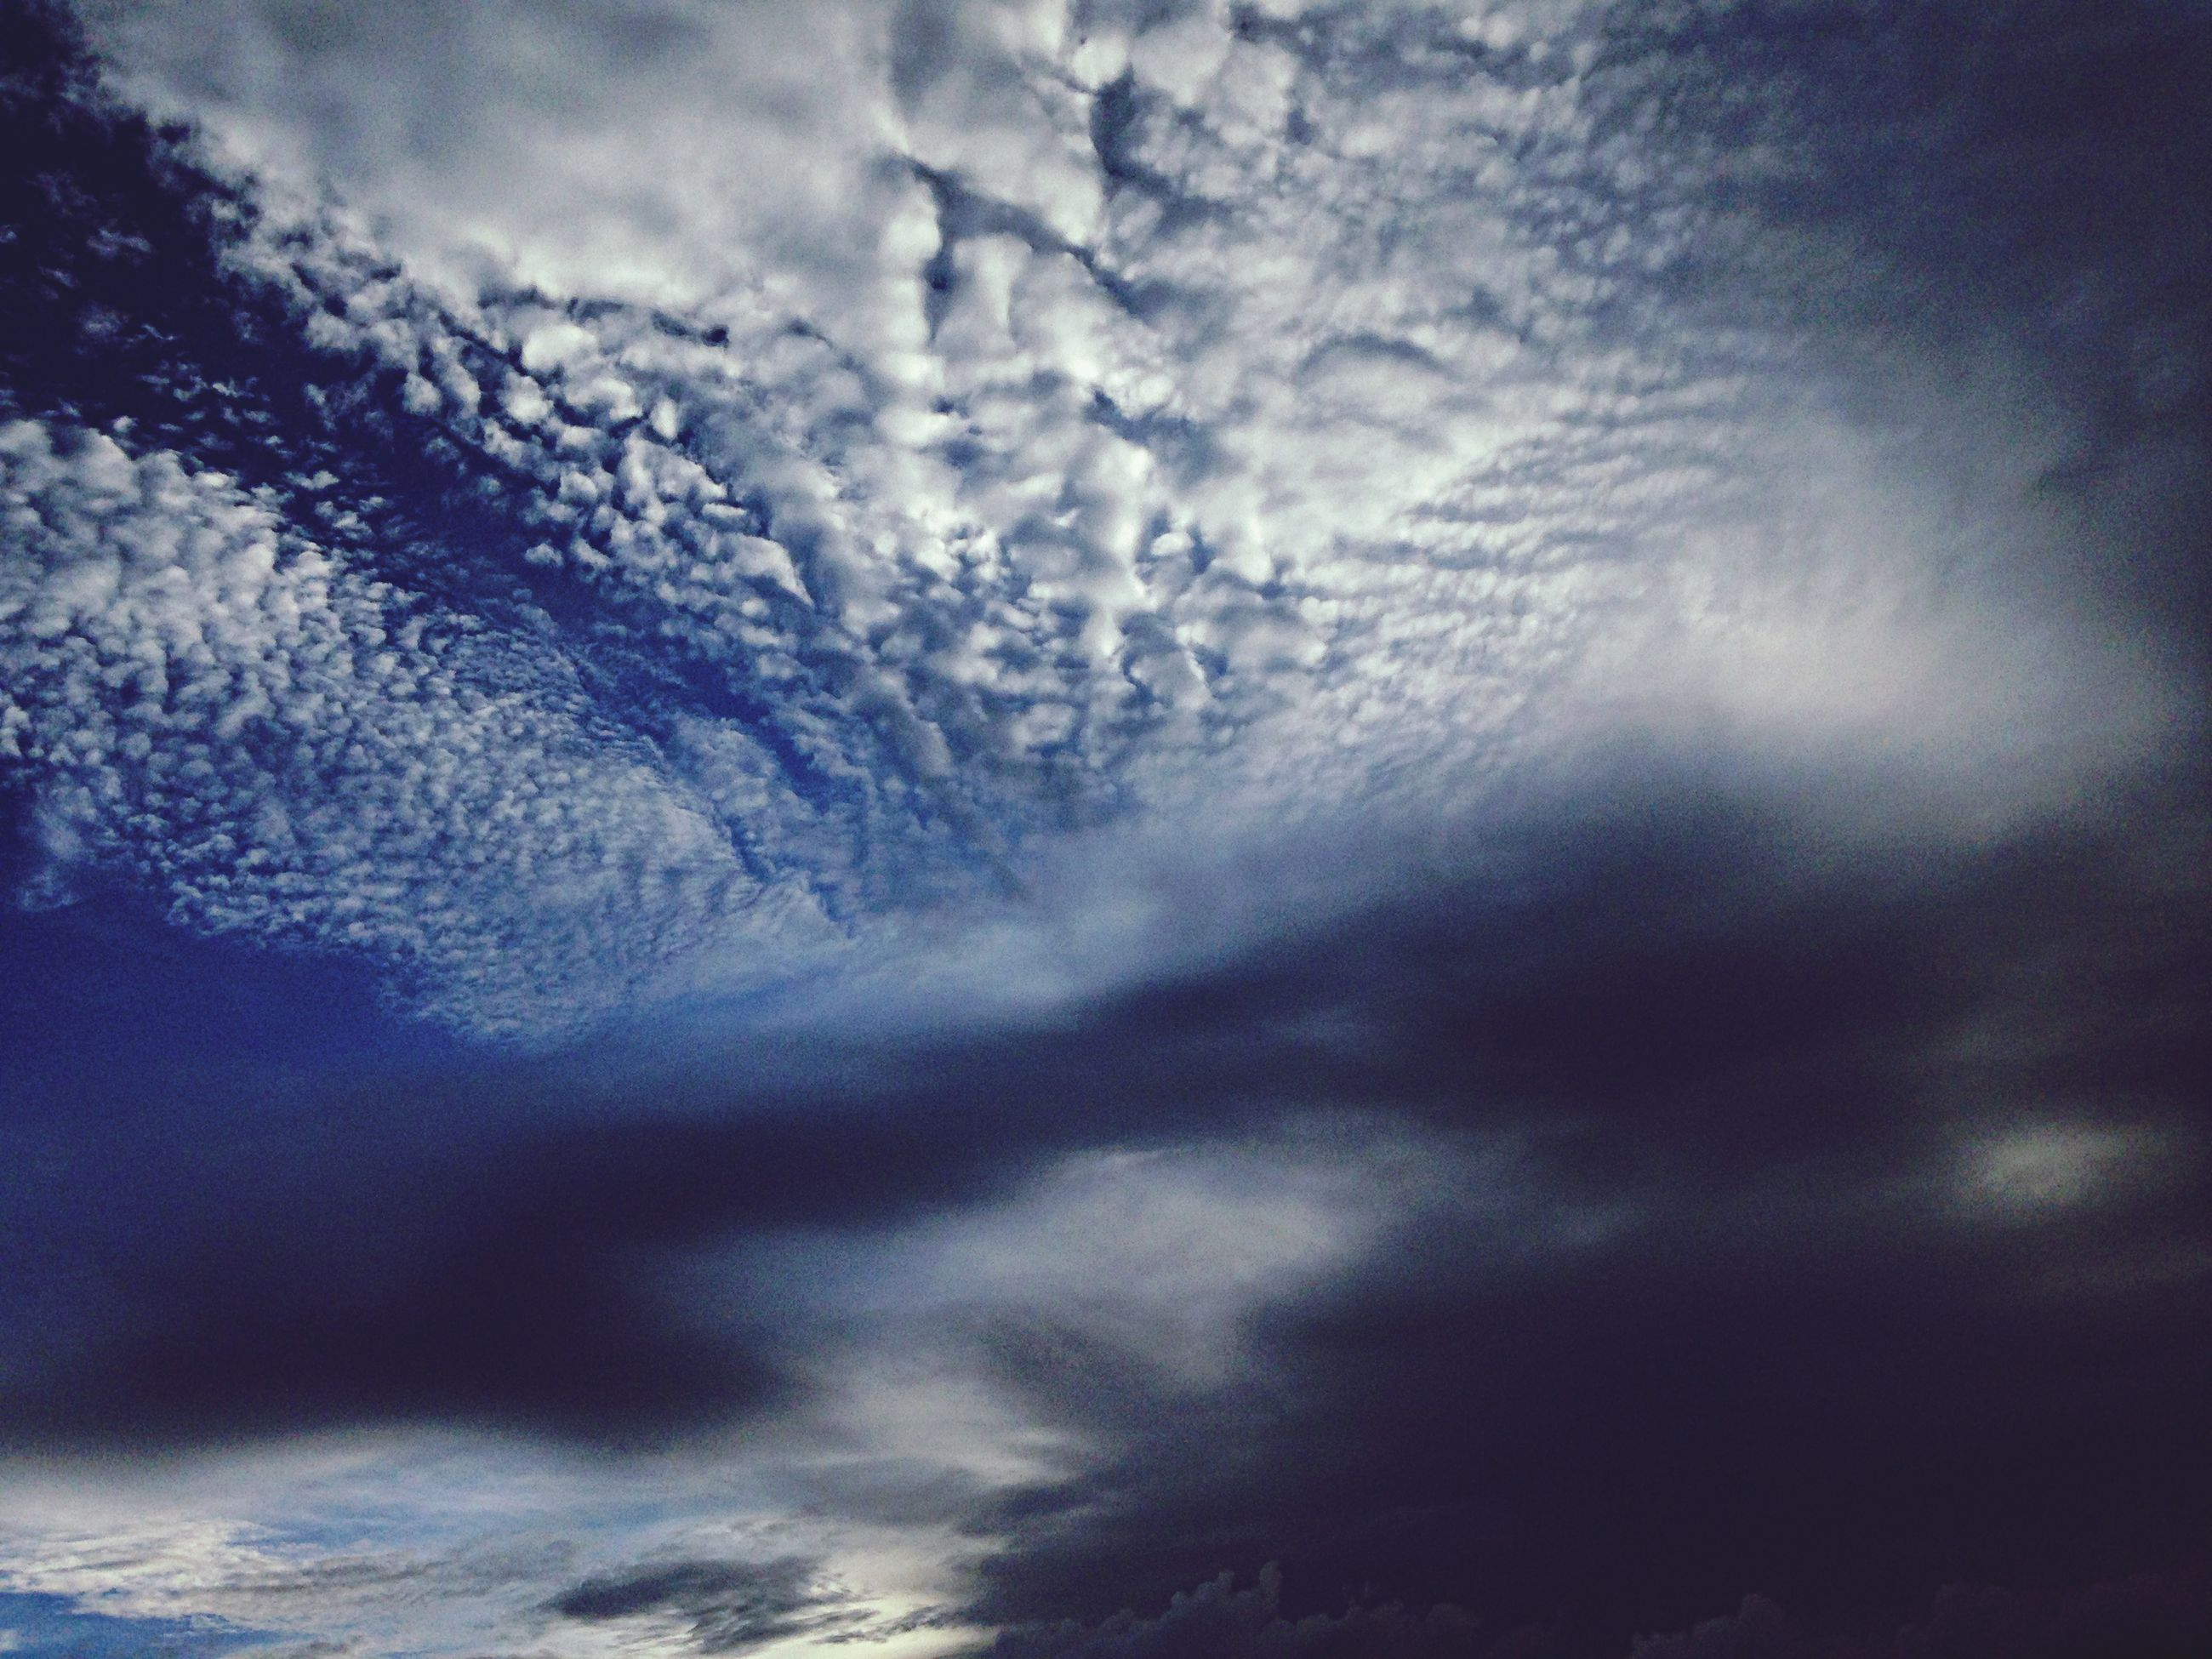 sky, cloud - sky, low angle view, cloudy, tranquility, beauty in nature, weather, nature, scenics, tranquil scene, idyllic, dusk, overcast, cloud, outdoors, cloudscape, backgrounds, tree, storm cloud, silhouette